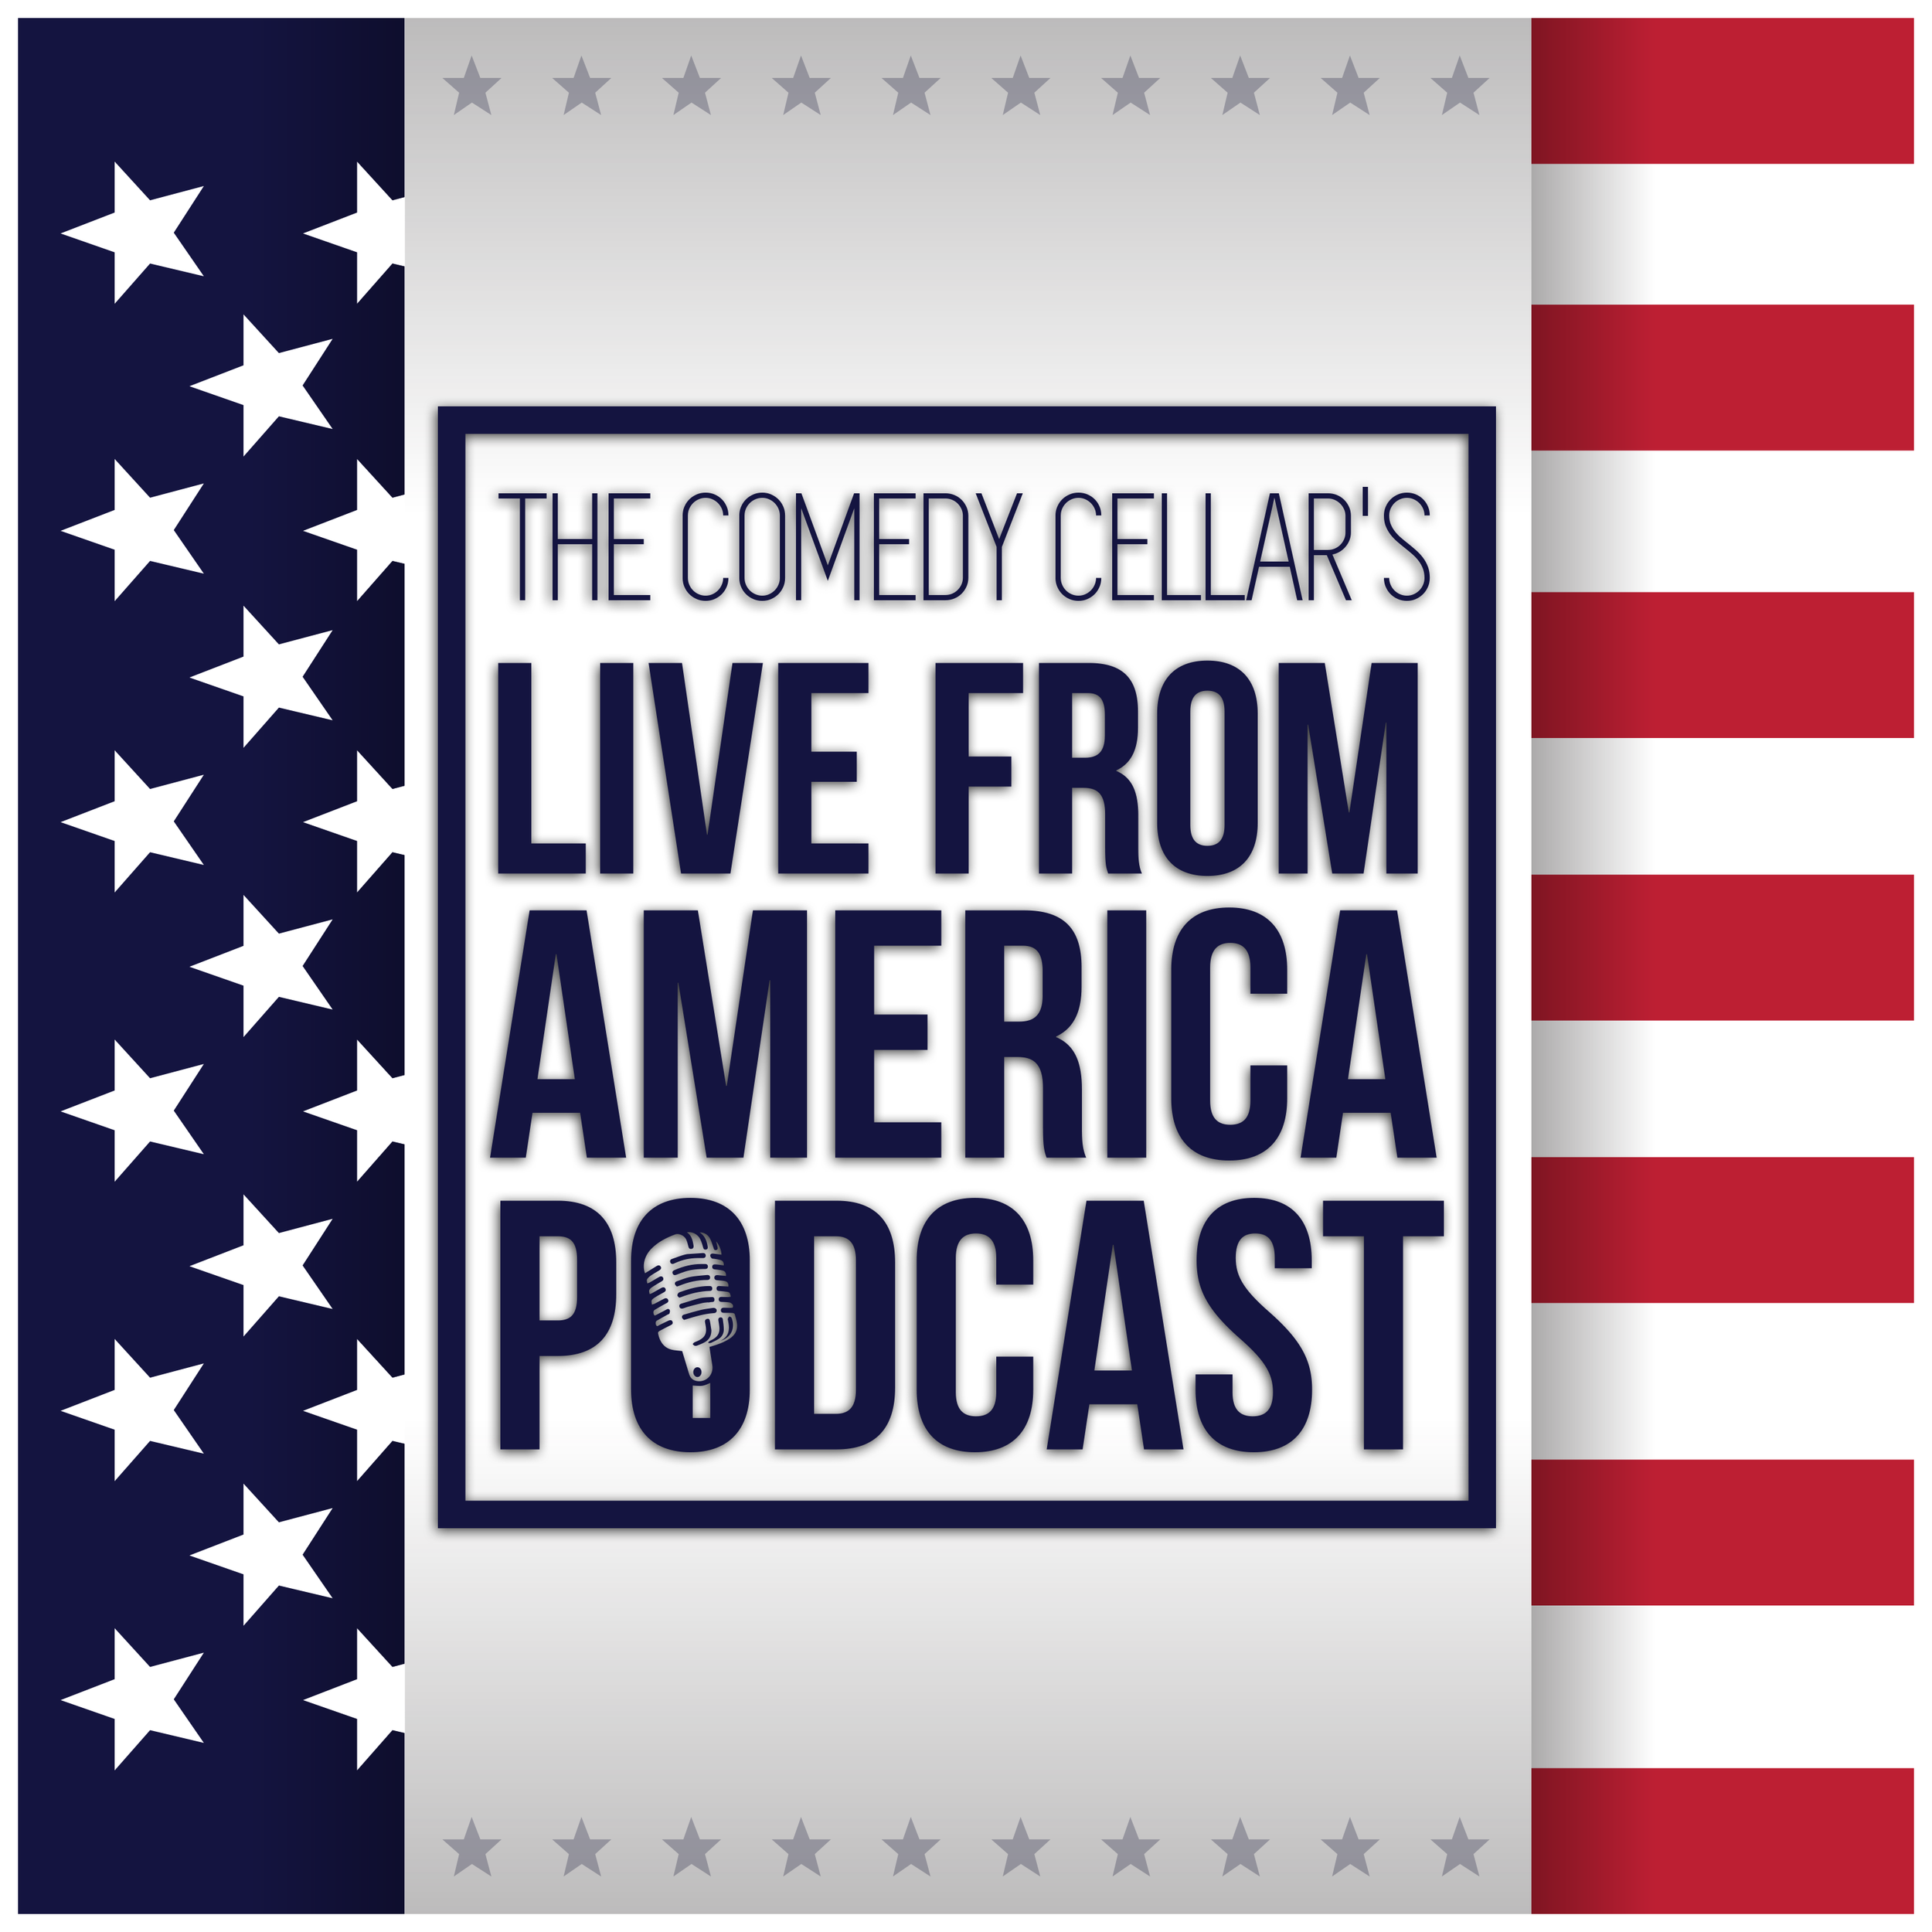 THE_LIVE_FROM_AMERICA_PODCASTnewpng (2).png